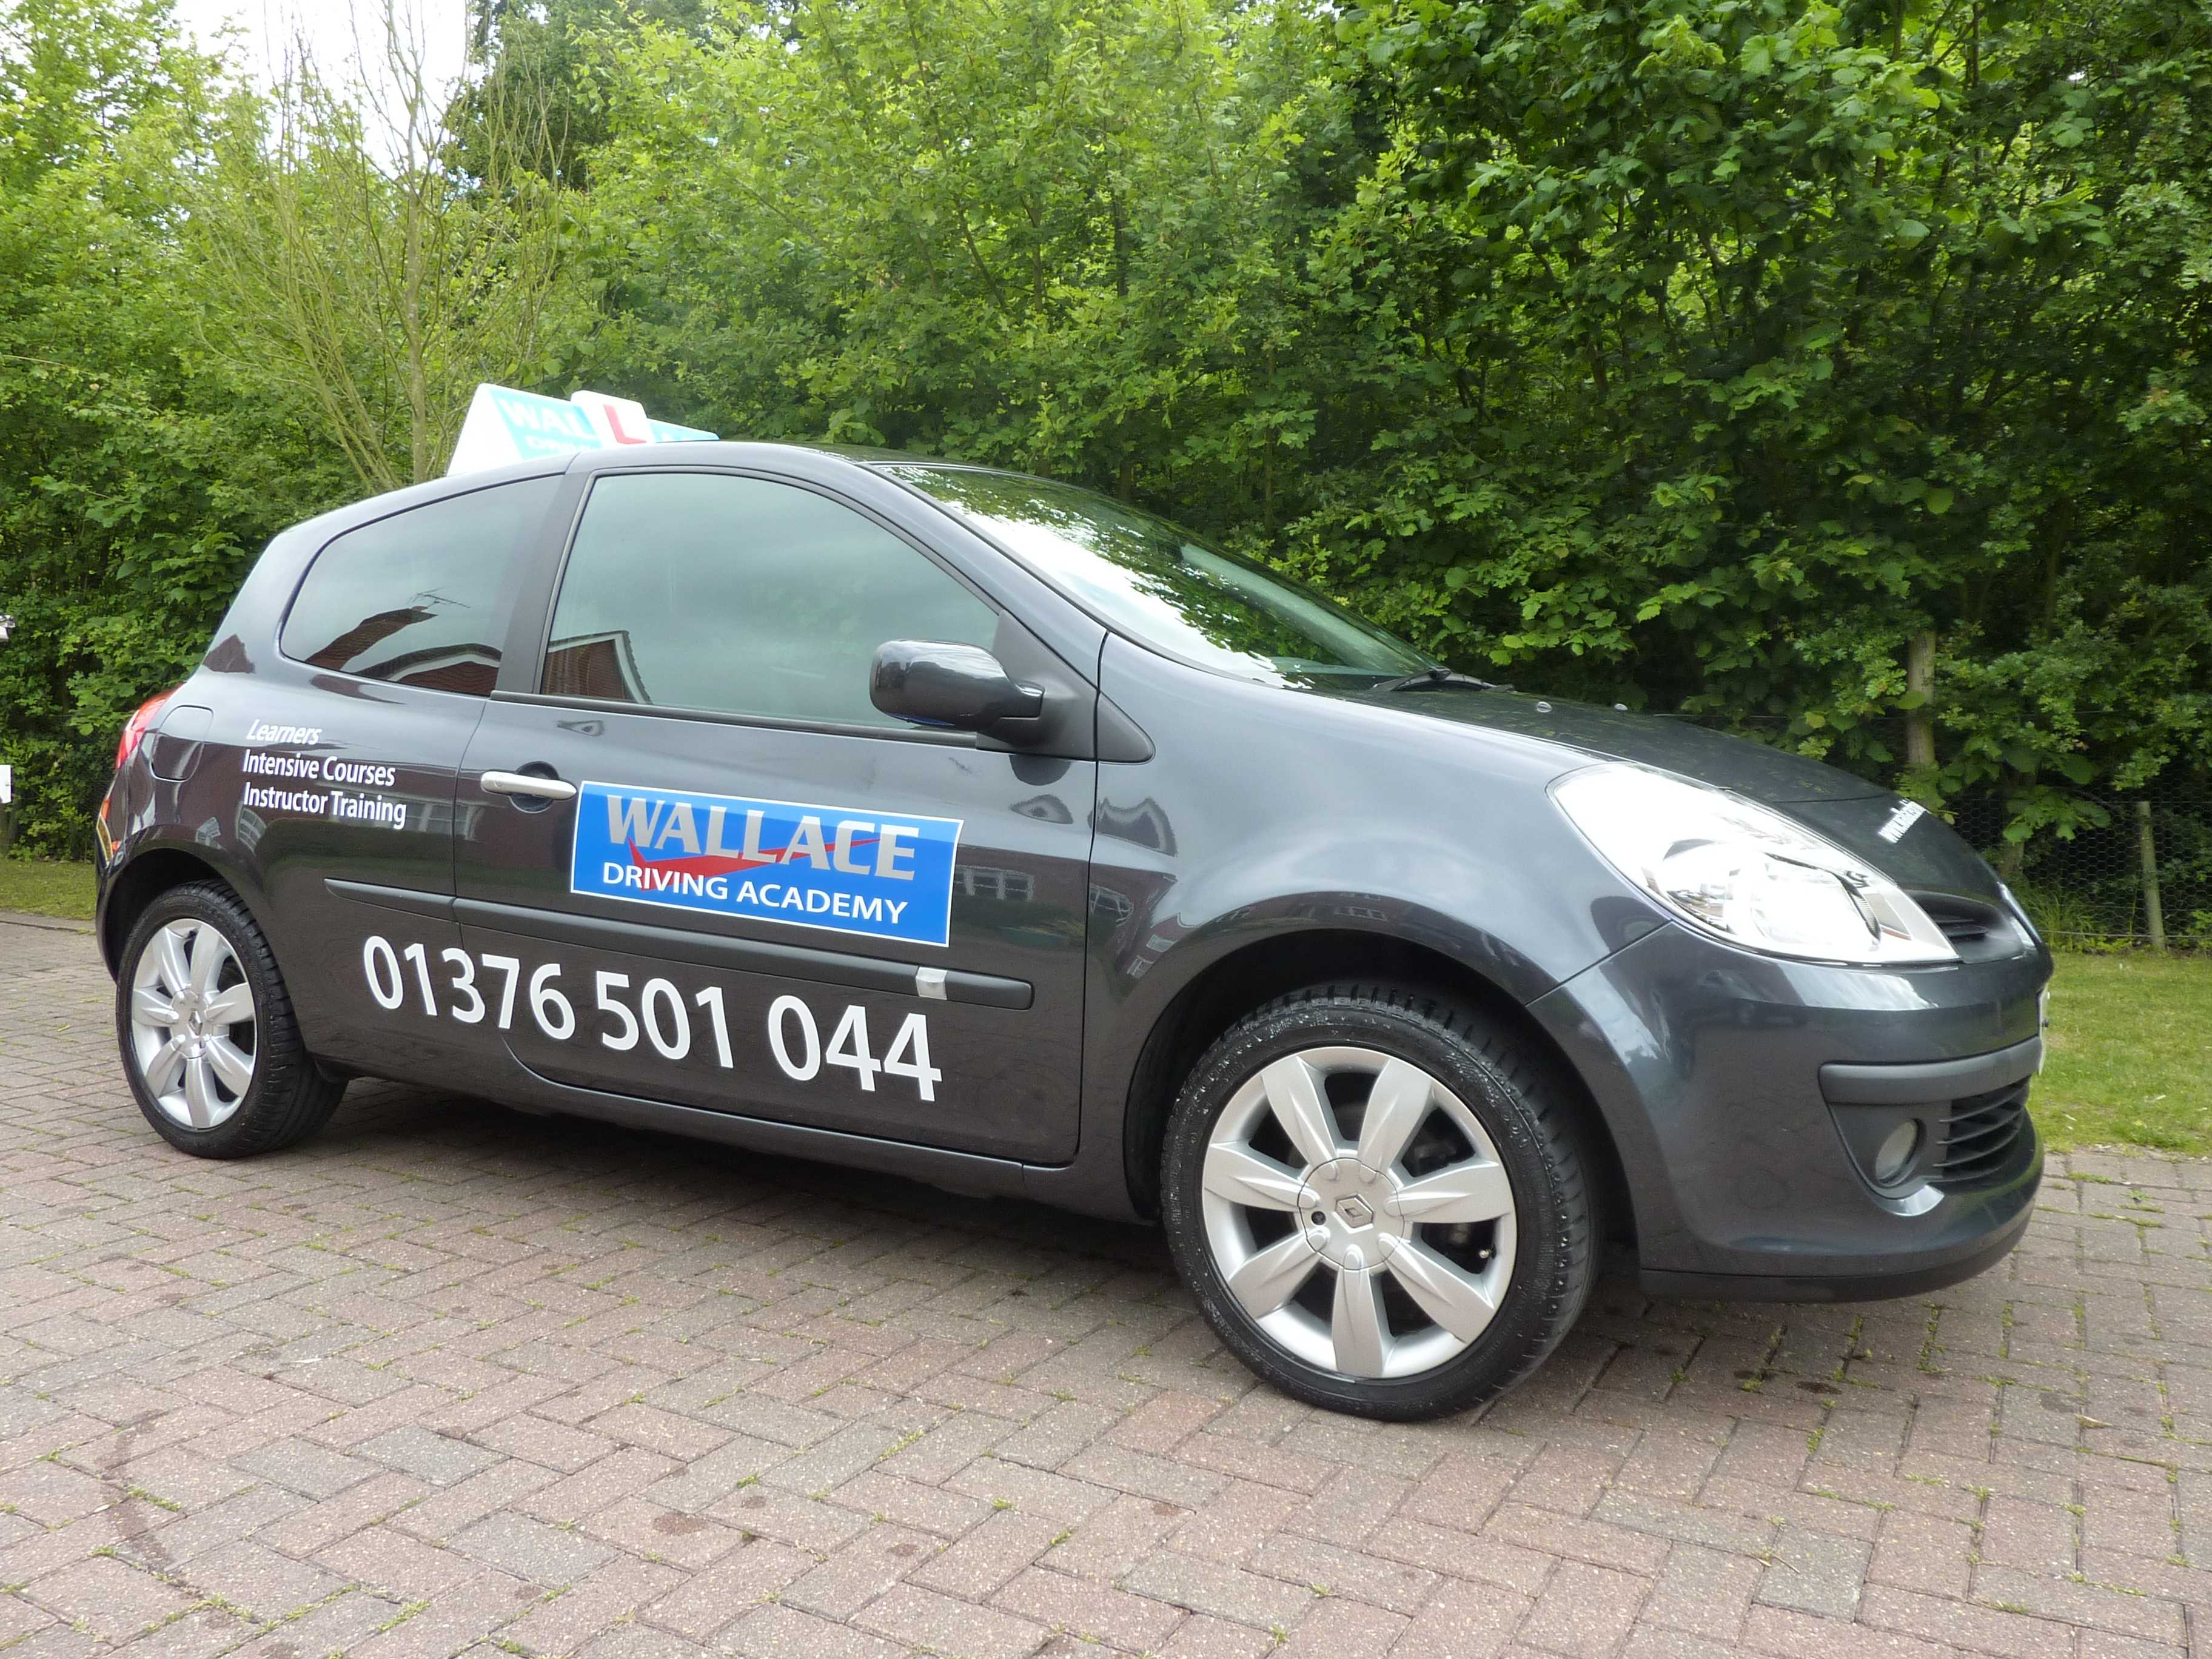 Driving Instructor Training at Wallace Driving Academy